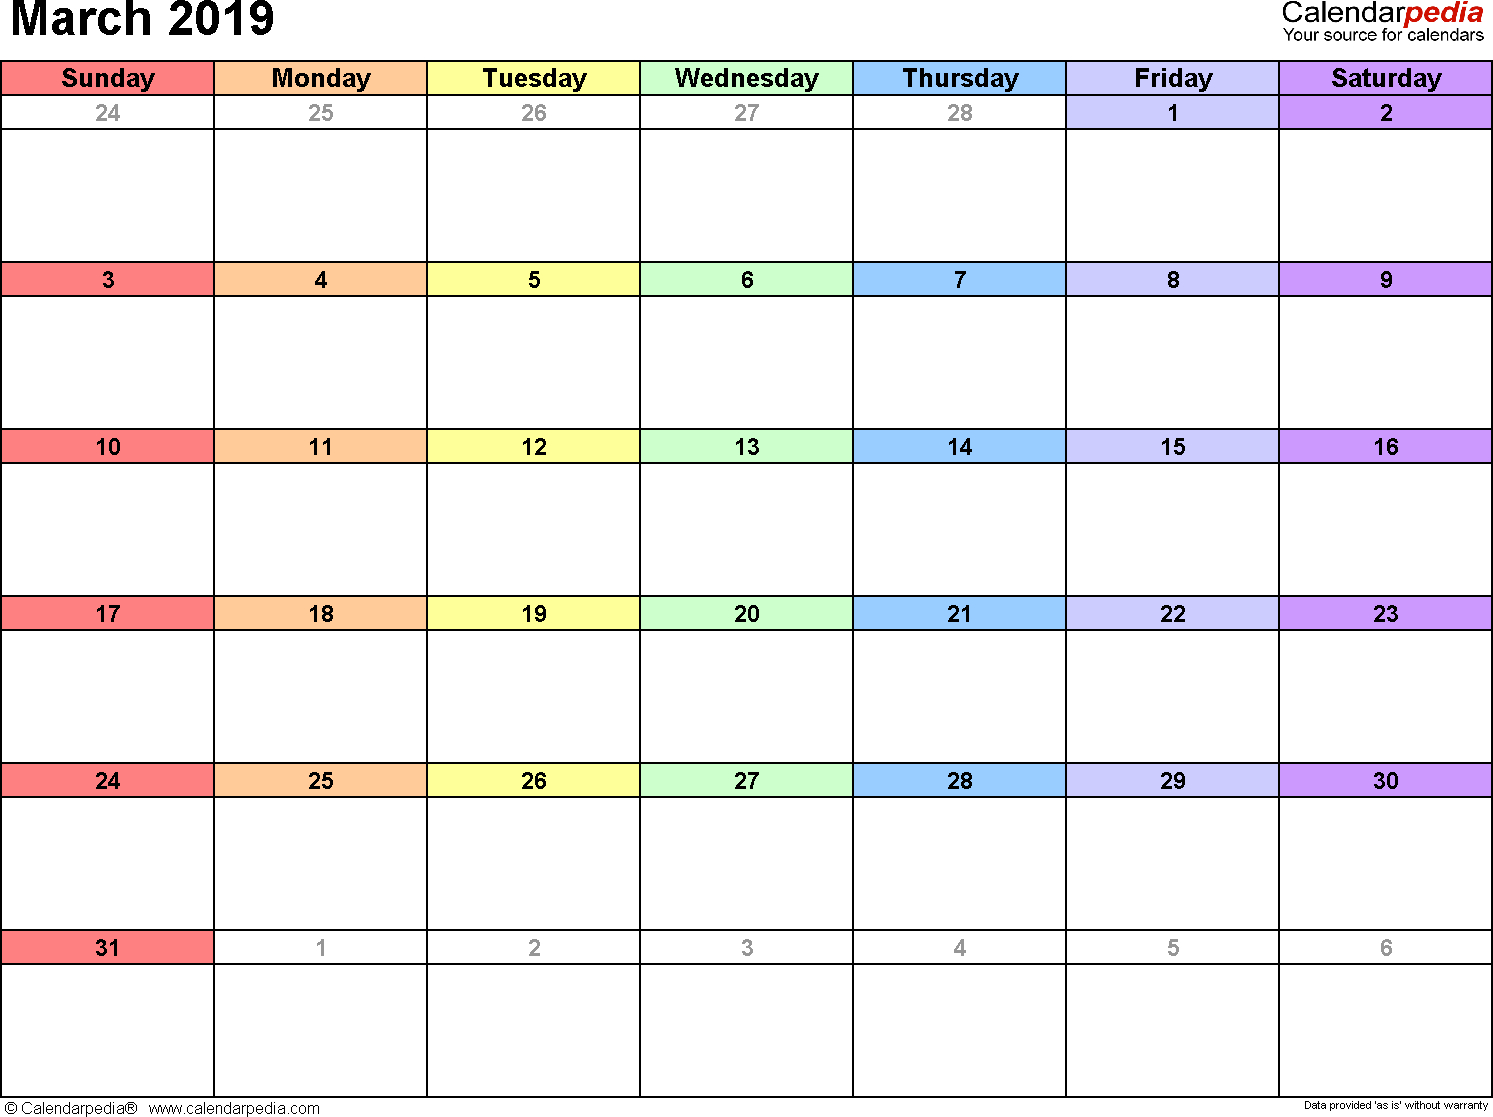 March 2019 Calendars For Word, Excel & Pdf with regard to March Calendar Printable Template